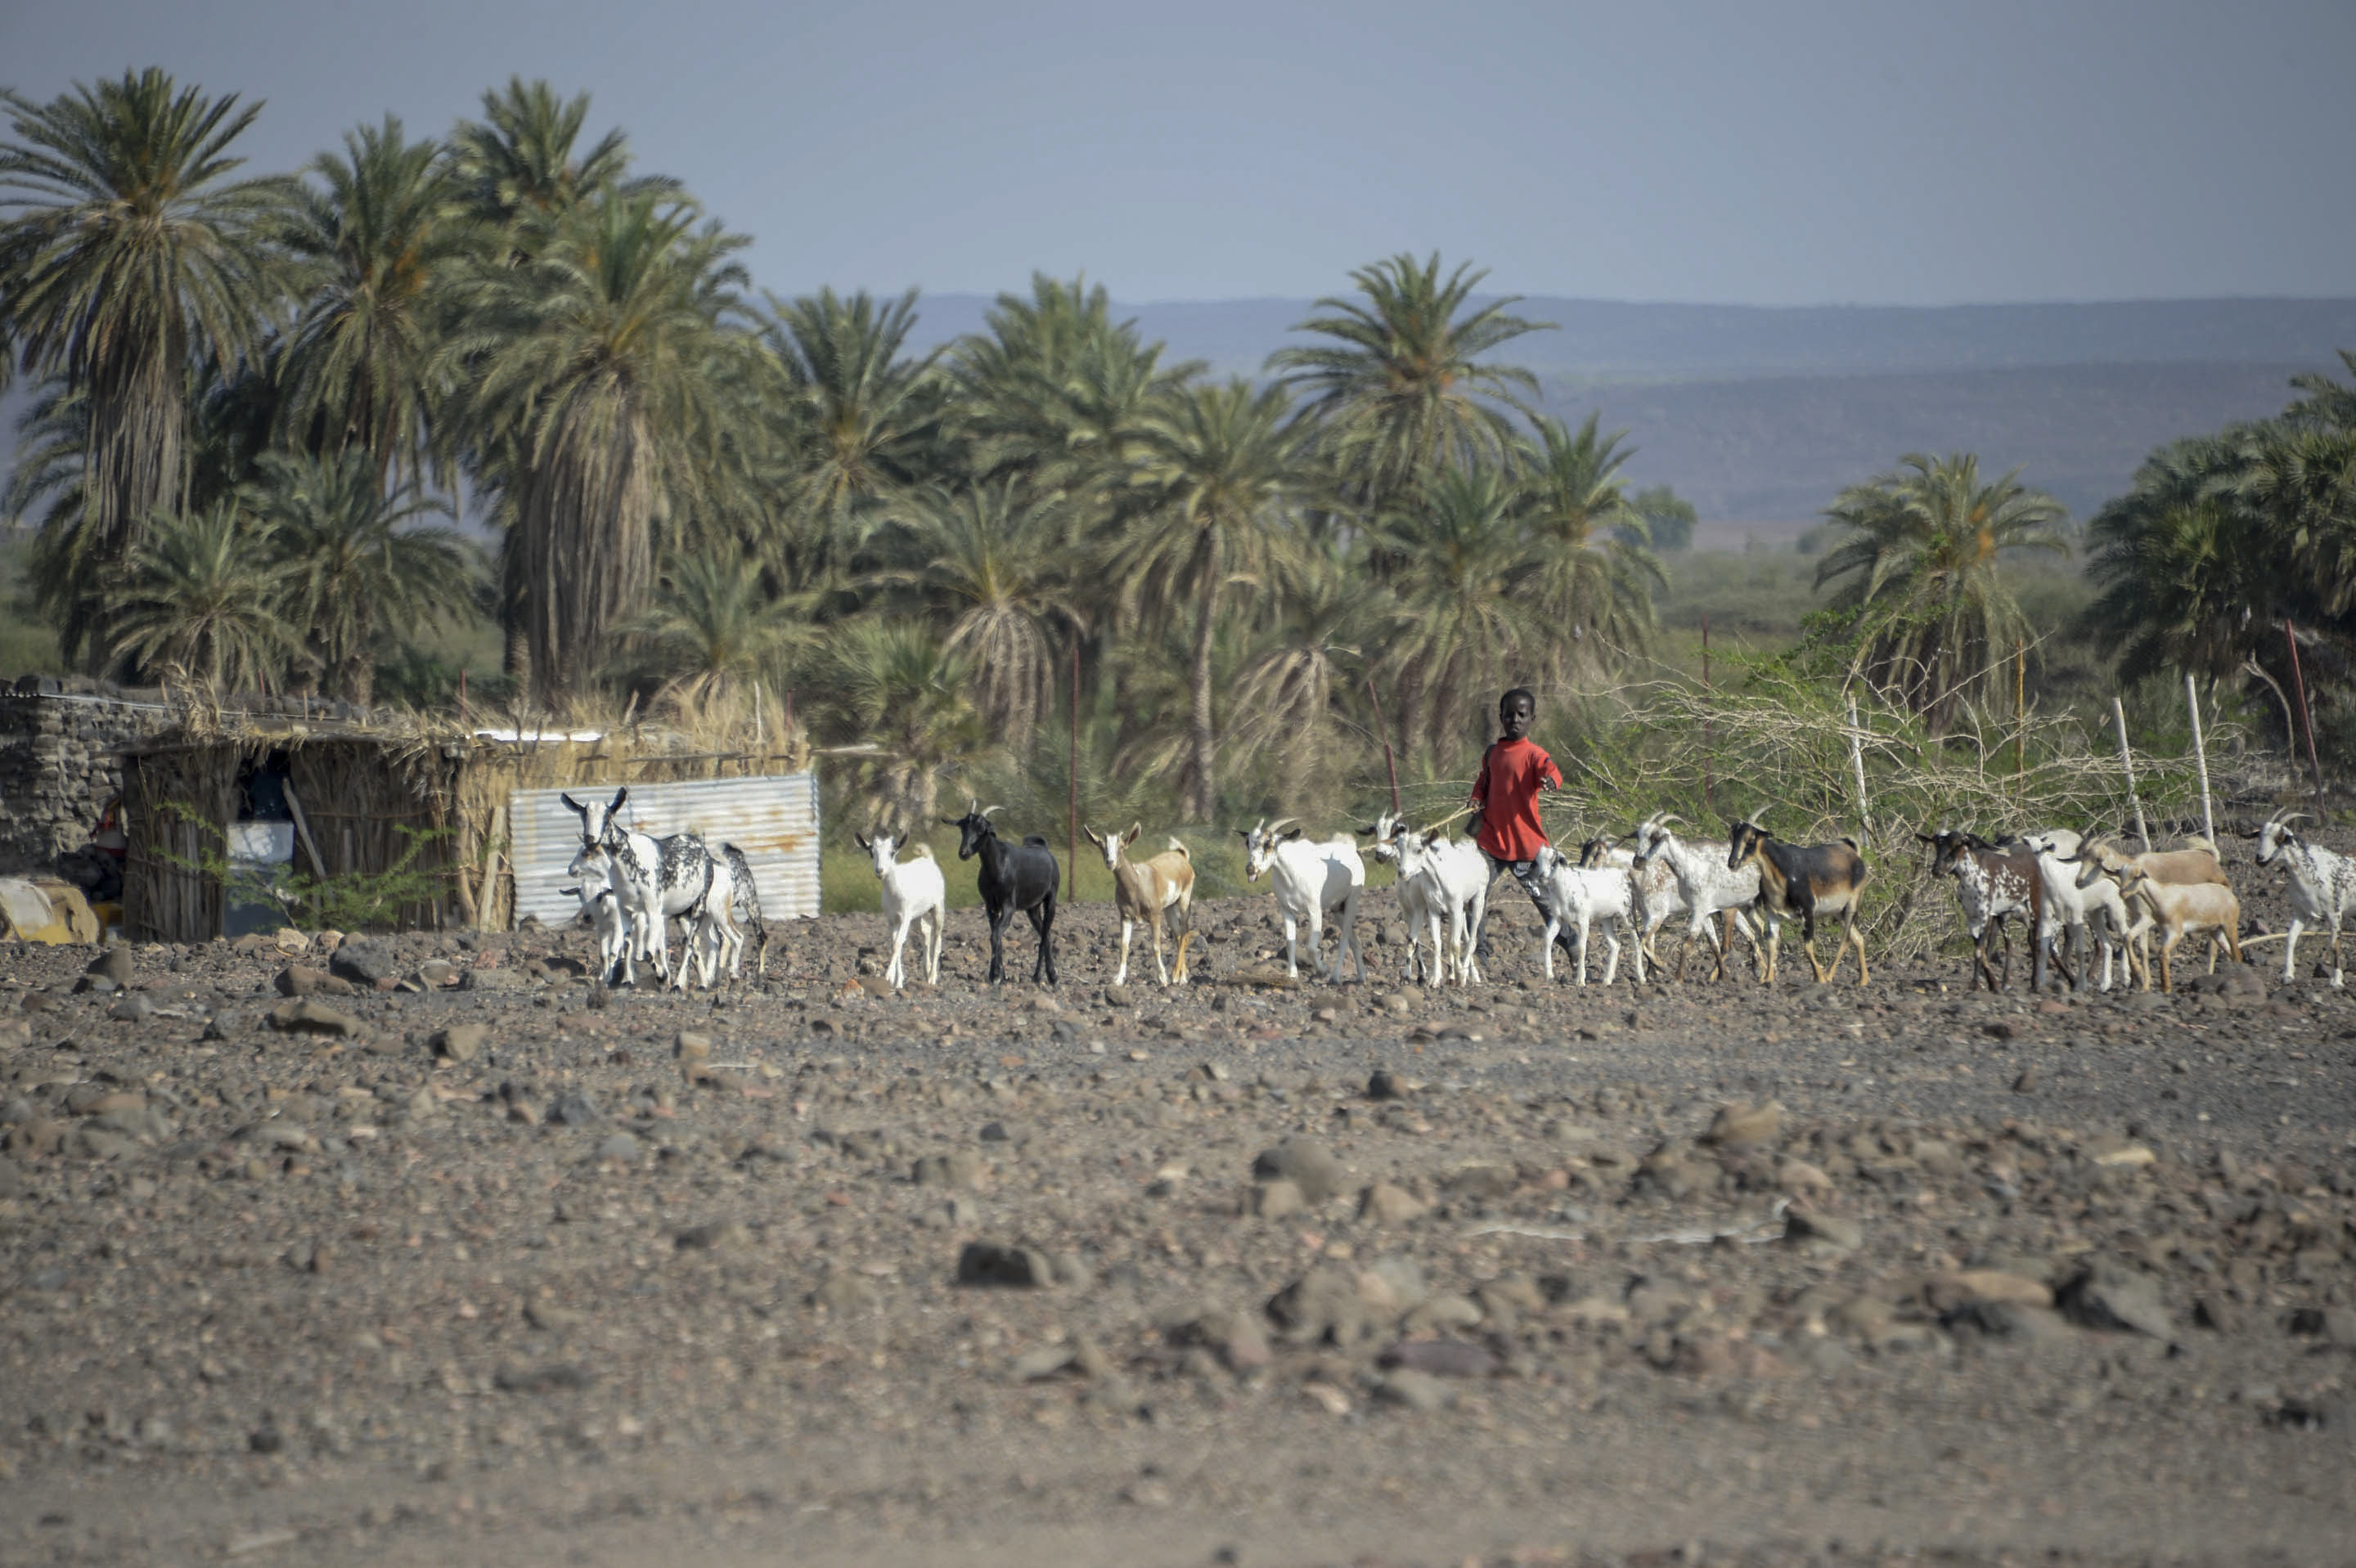 A young Djiboutian boy herds goats toward U.S. Soldiers with the 418th Civil Affairs Battalion Function Specialty Unit (FxSP) in a rural area outside of Dikhil, Djibouti, April 3, 2017. As part of their veterinarian assistance mission, FxSP members administered anti-parasitic medication to ward off the parasites that steal the animal's nutrients and energy, increasing their survivability during the dry summer months. (U.S. Air National Guard photo by Staff Sgt. Christian Jadot)